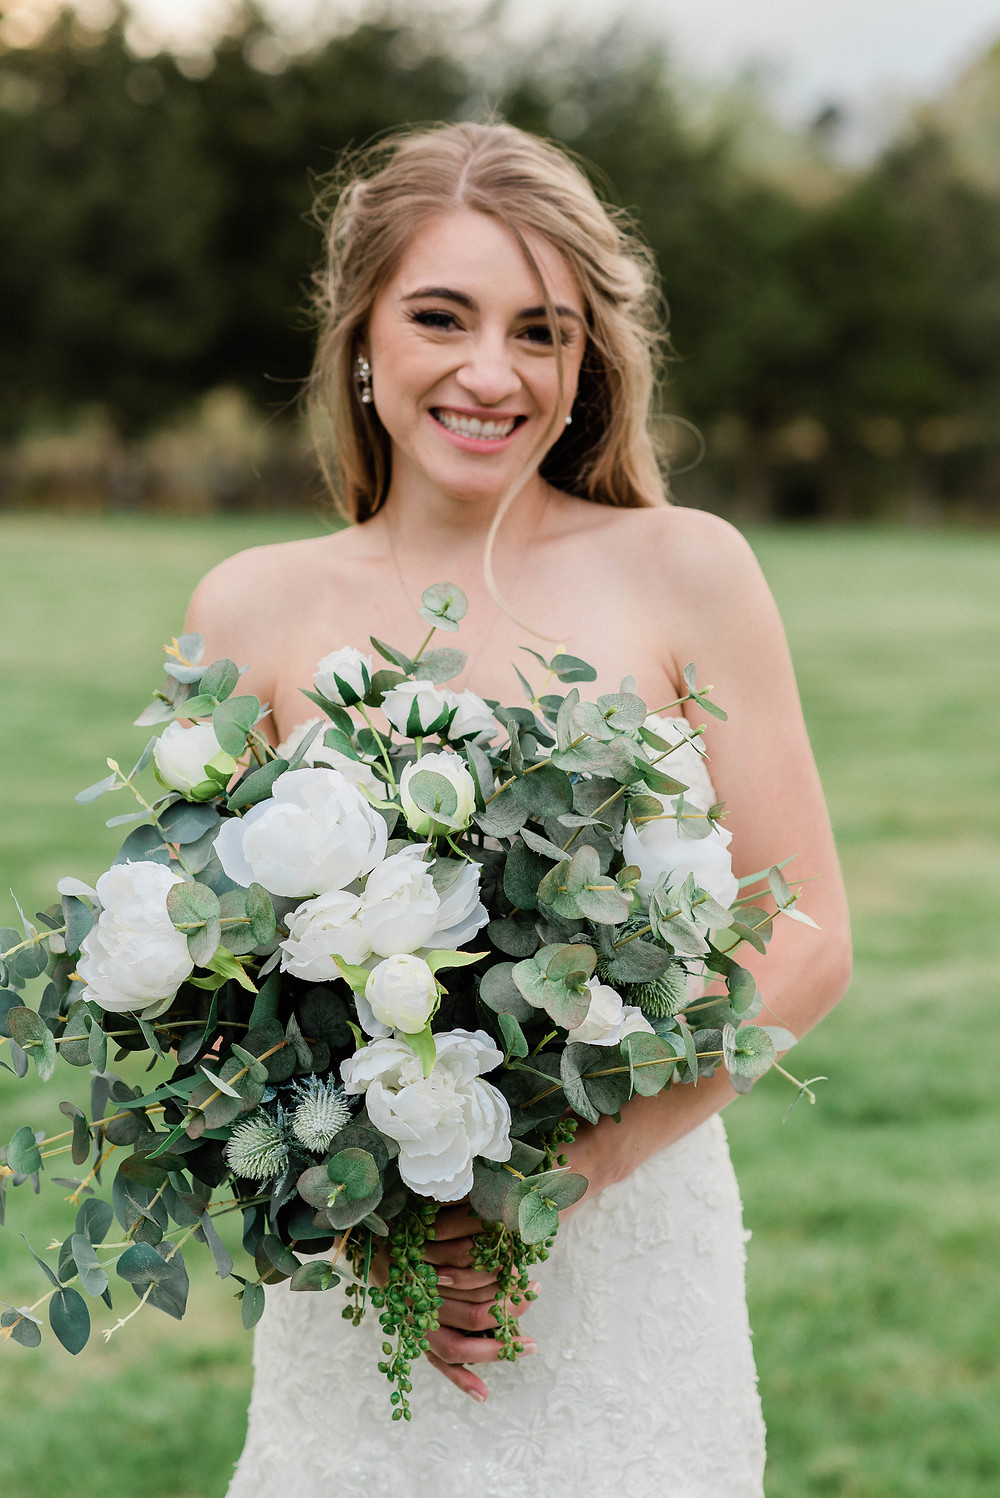 The bride smiling at the camera holding her bouquet.